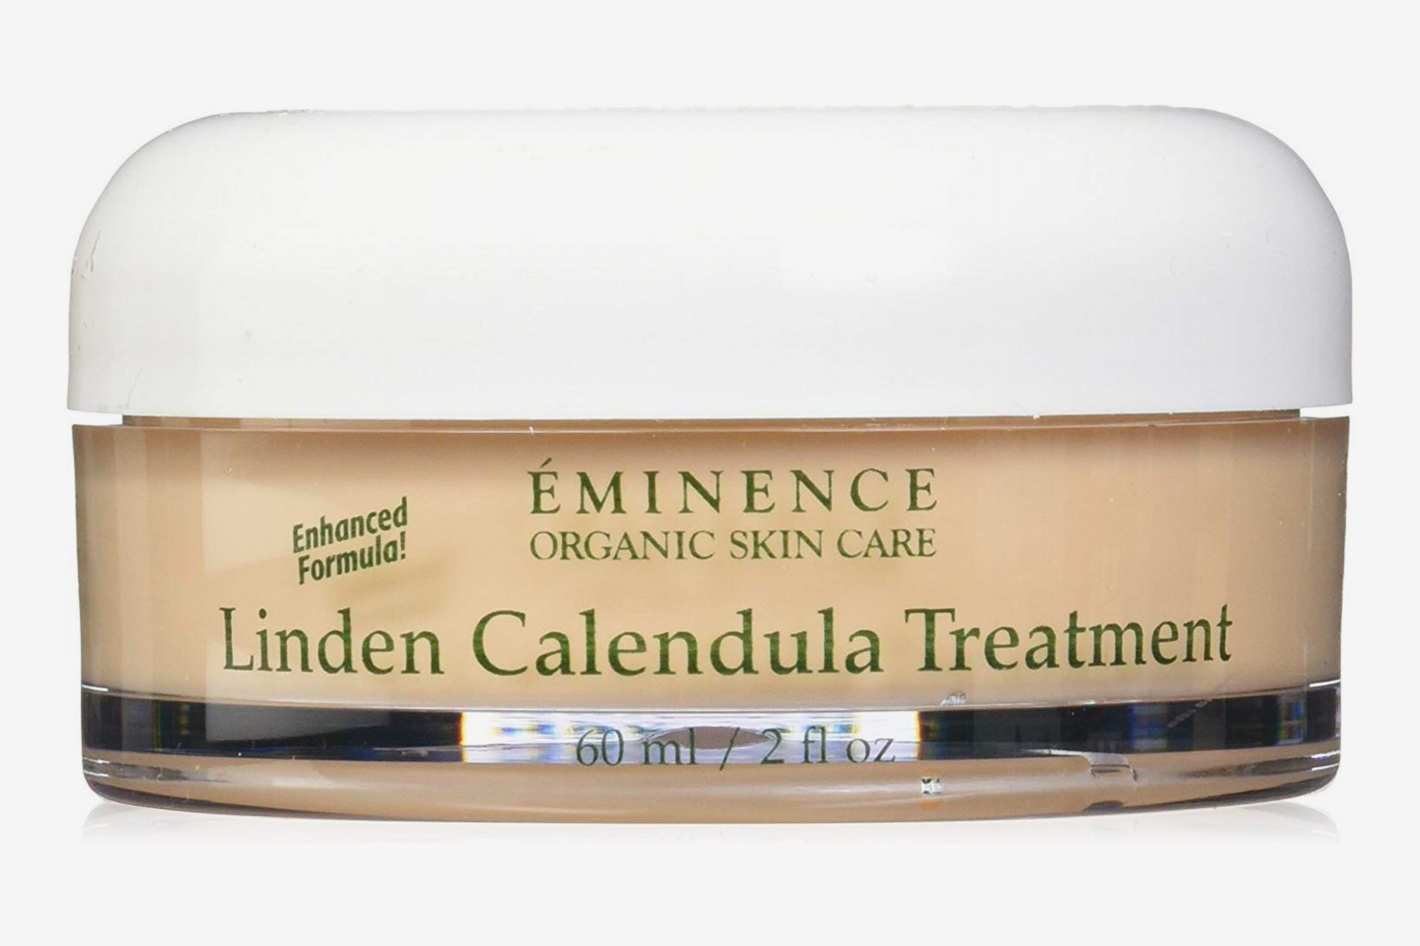 Eminence Linden Calendula Treatment